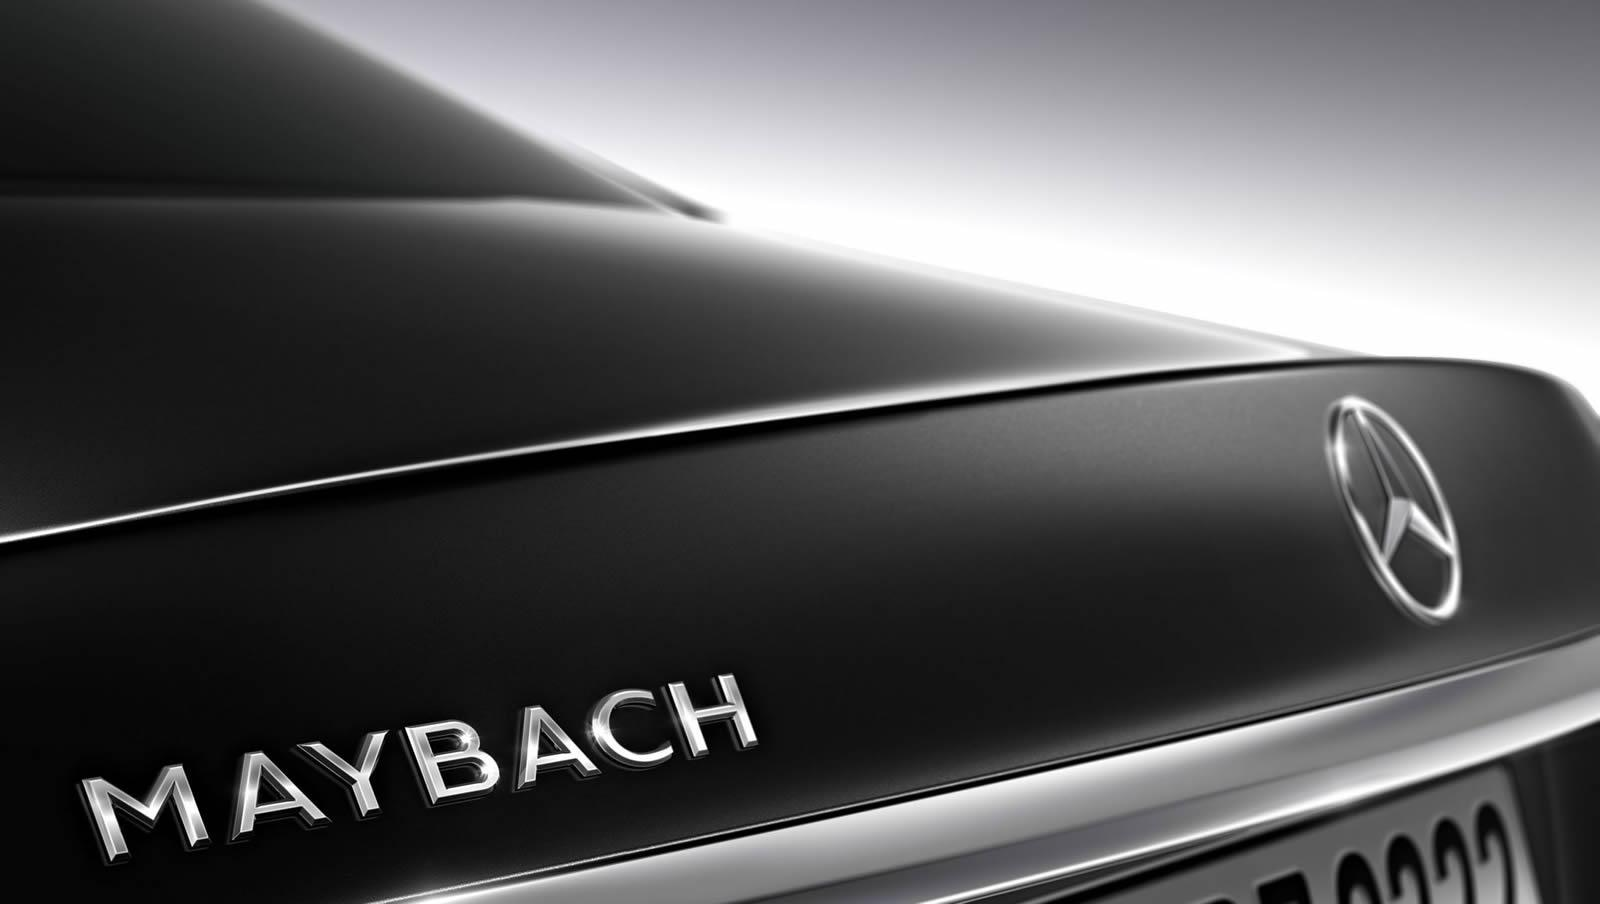 Maybach is Back! Mercedes-Maybach S Class -S600 teased ahead of LA Motor Show